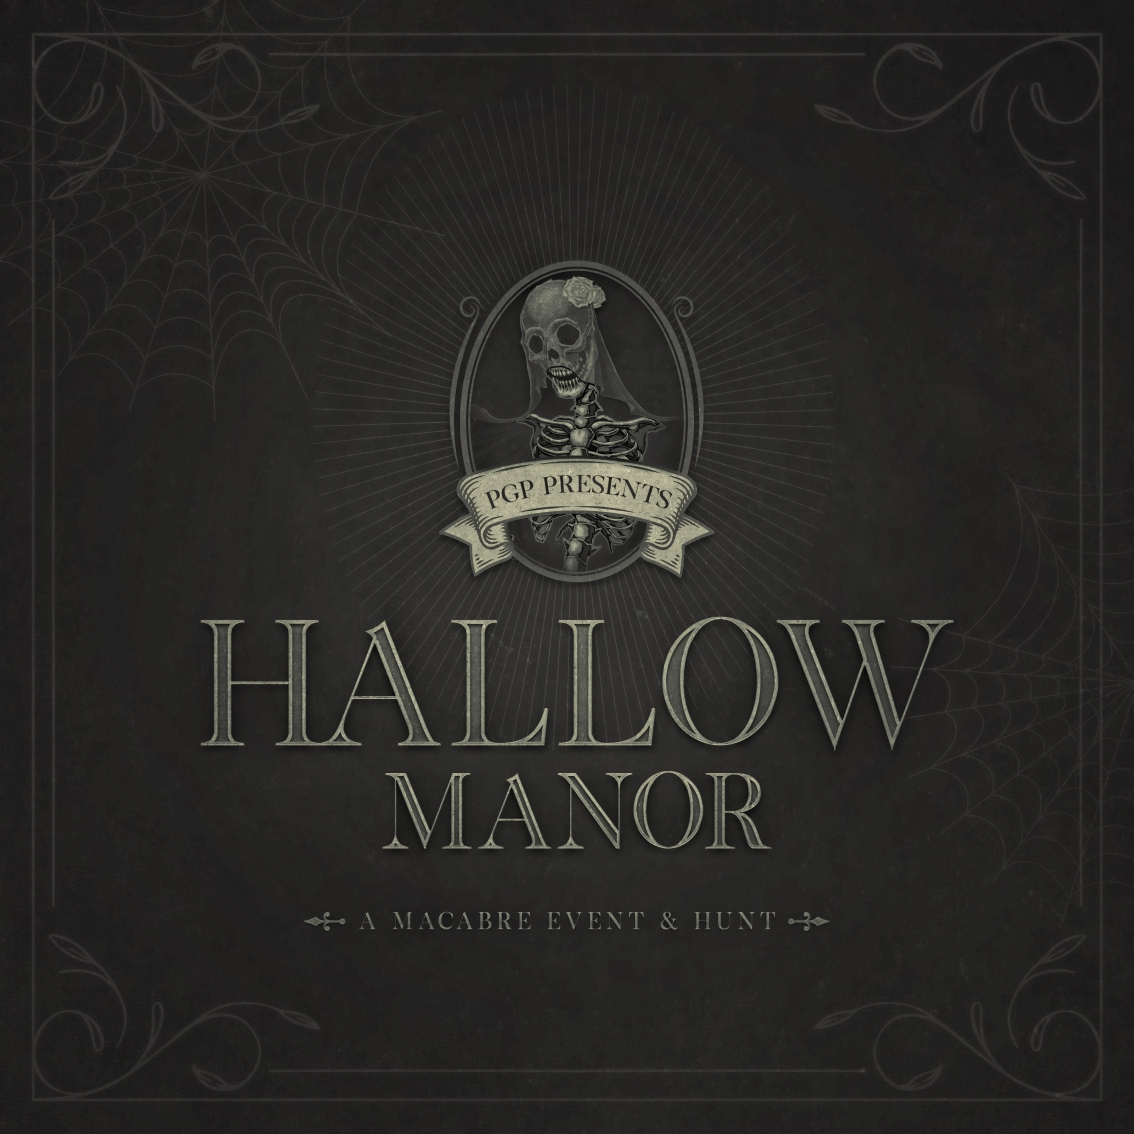 Hallow Manor is OPEN!